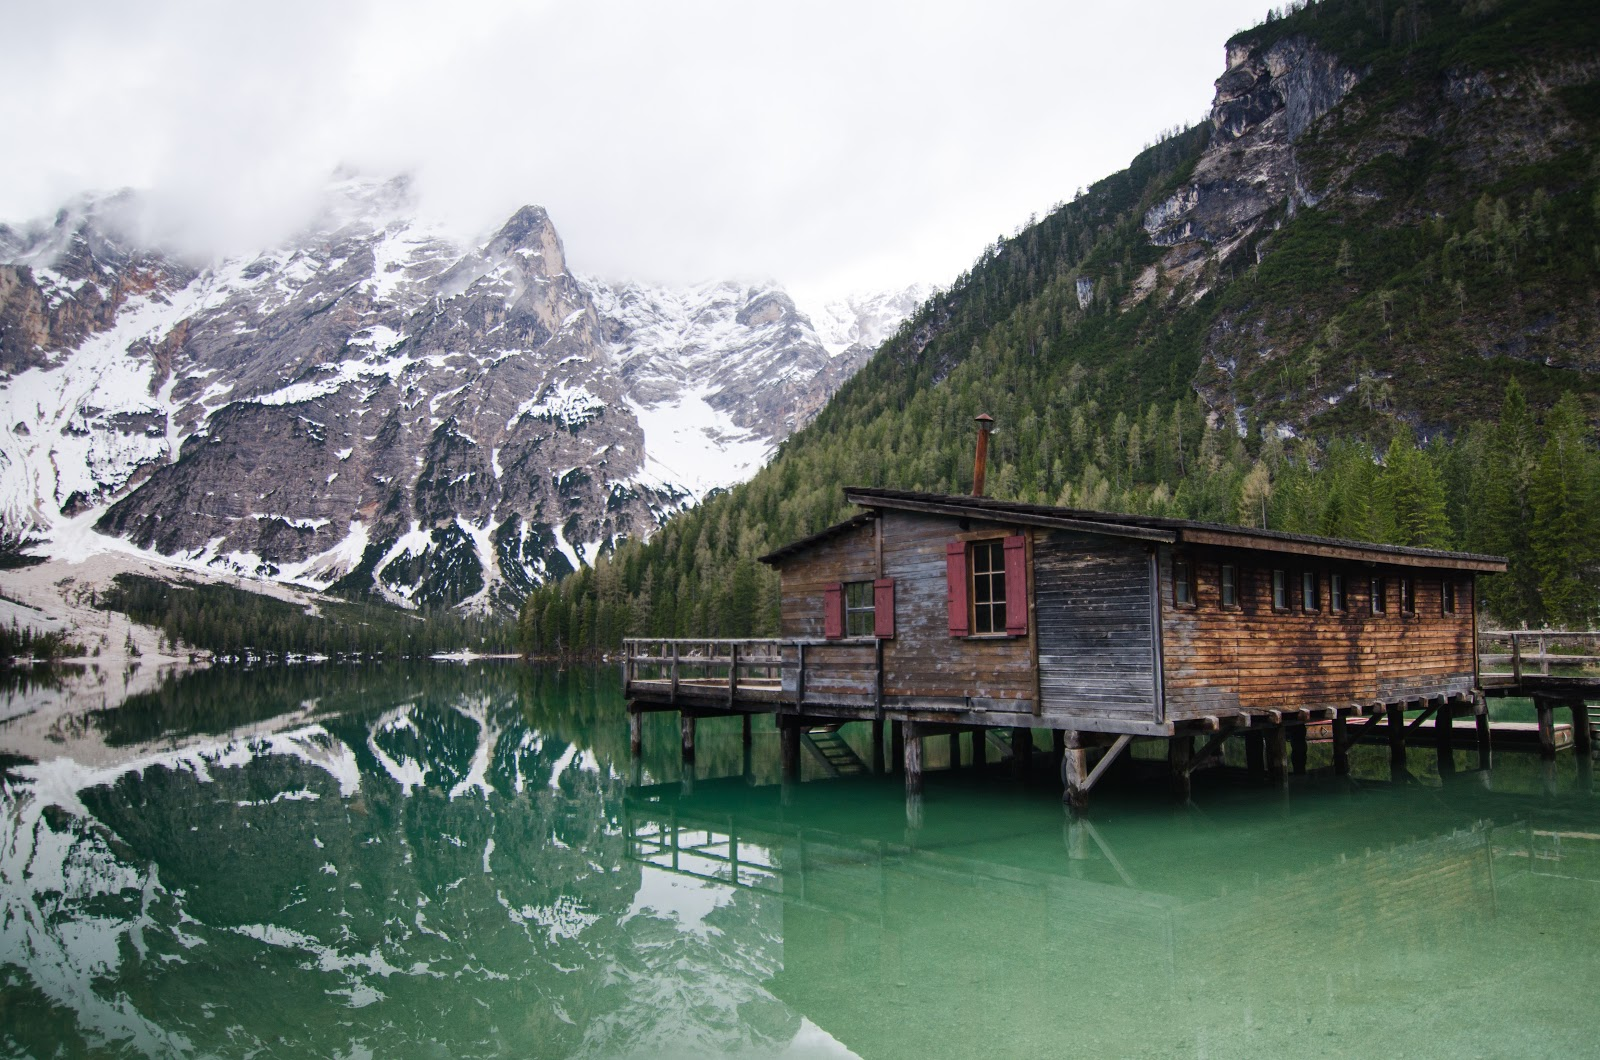 brown-wooden-house-on-lake-near-snow-covered-mountain-scenery-images